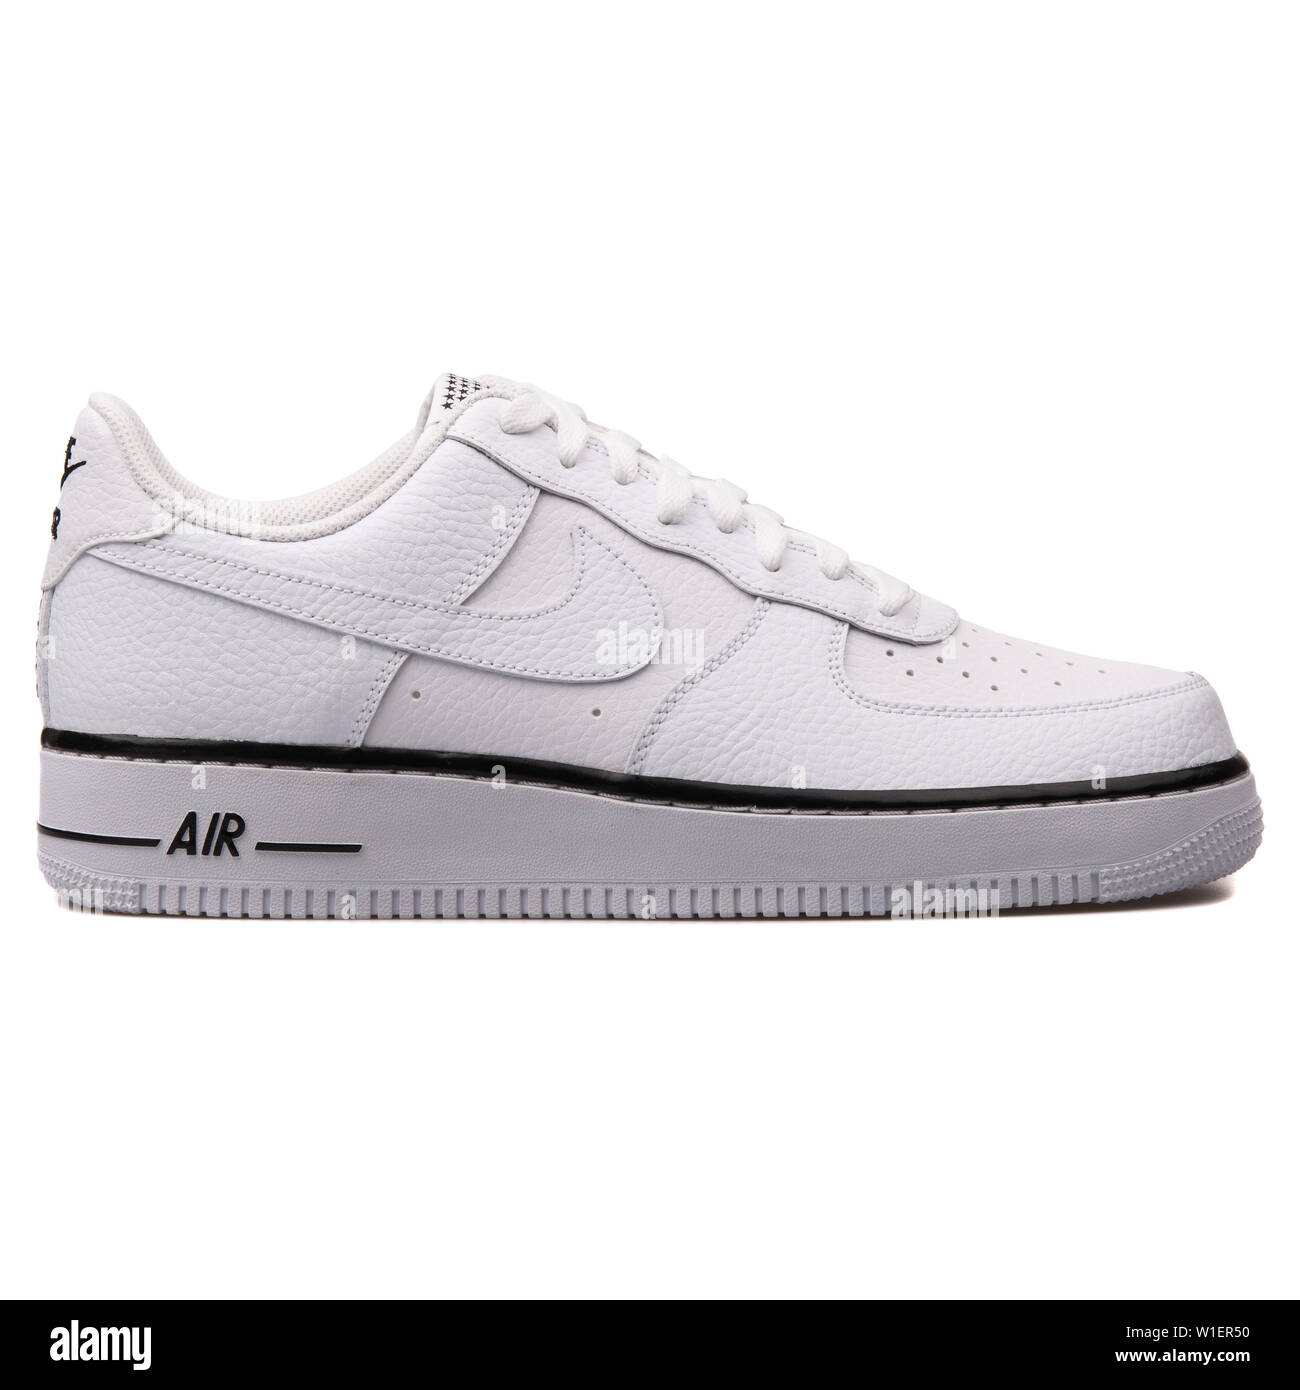 d80752b7 Nike Air Force 1 White Stock Photos & Nike Air Force 1 White Stock ...